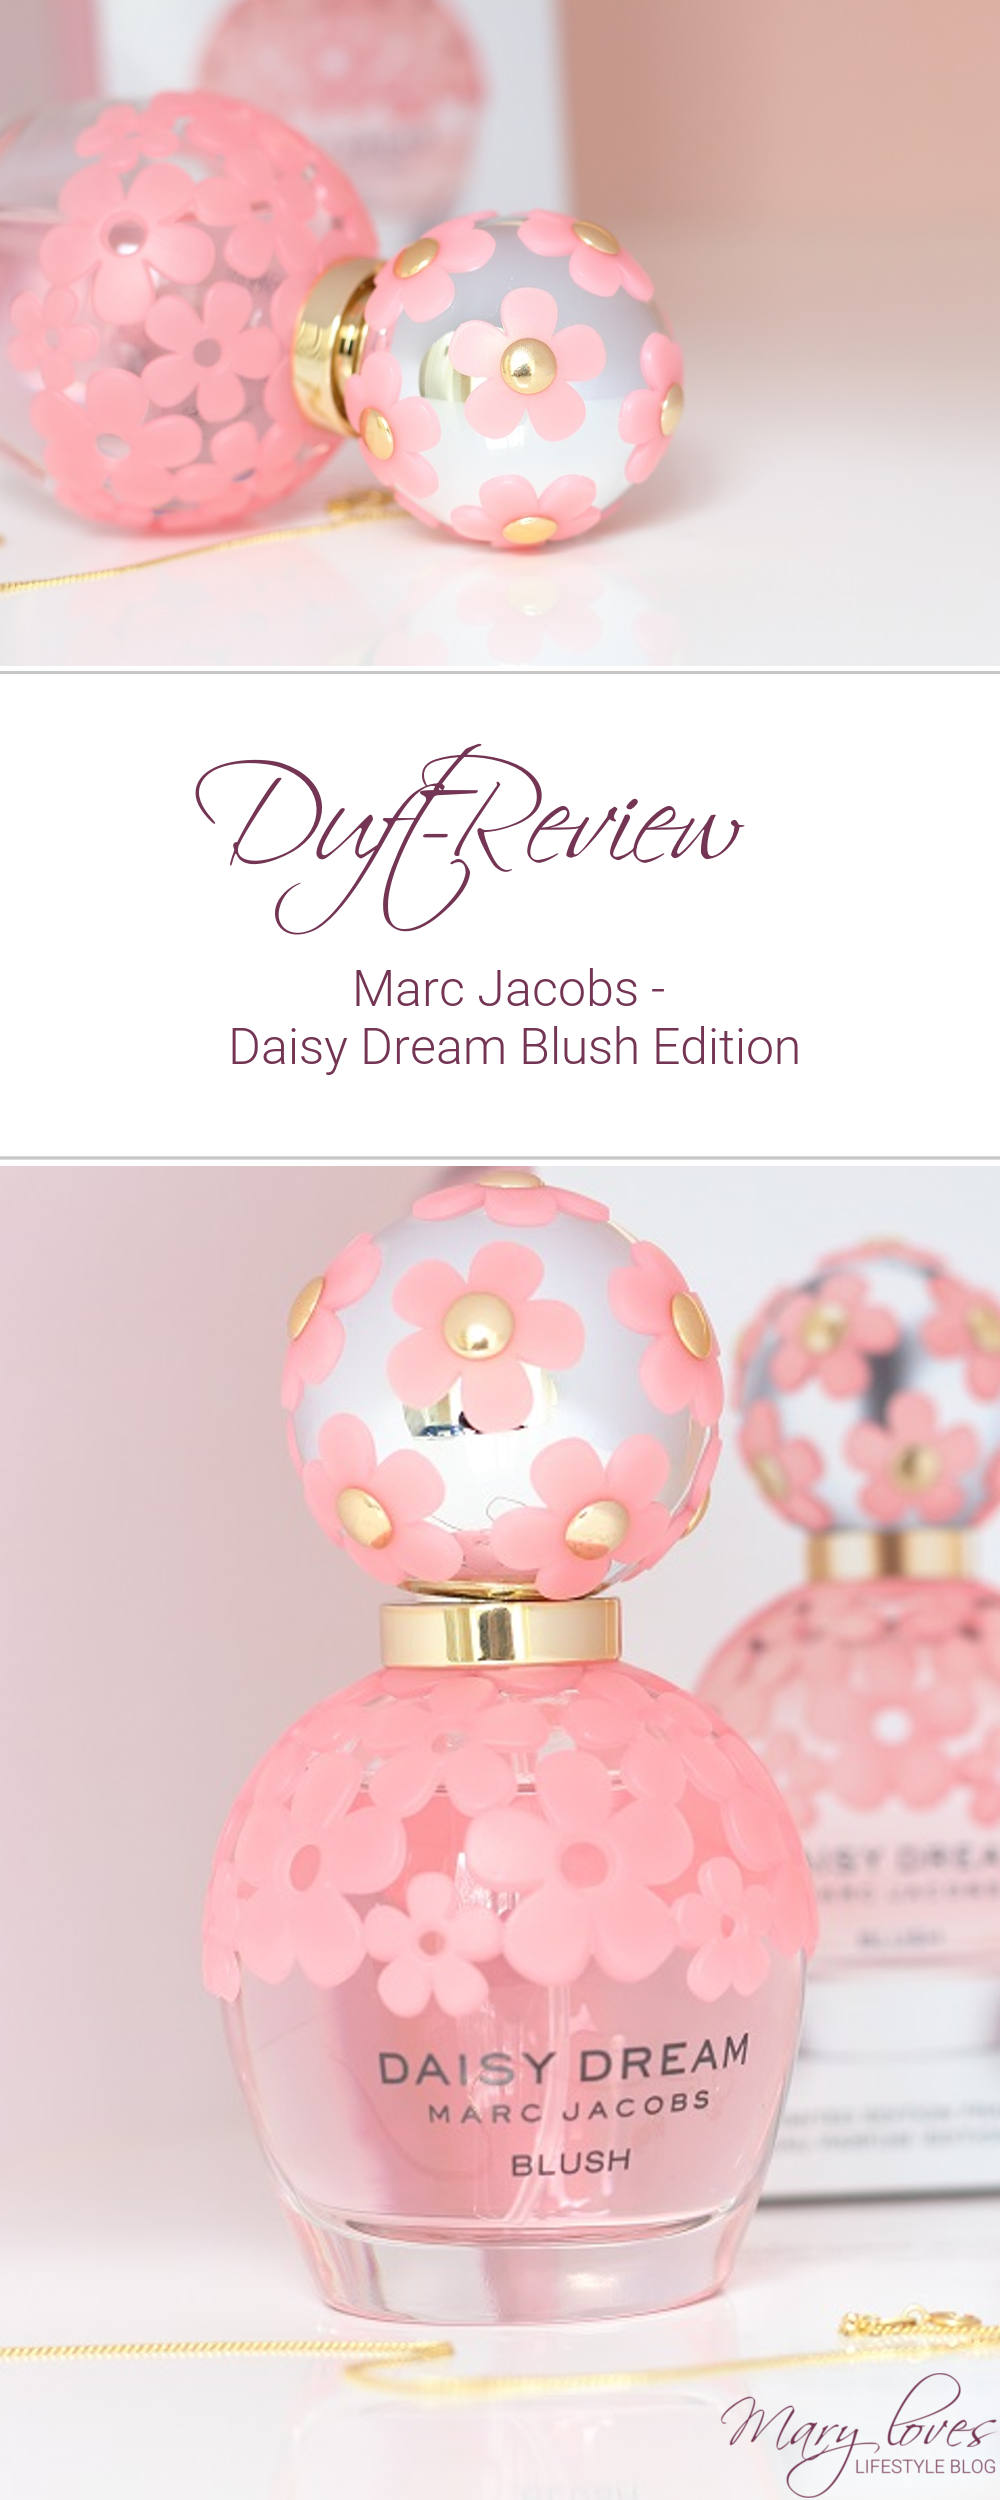 Duft-Review - Daisy Dream Marc Jacobs Blush Edition